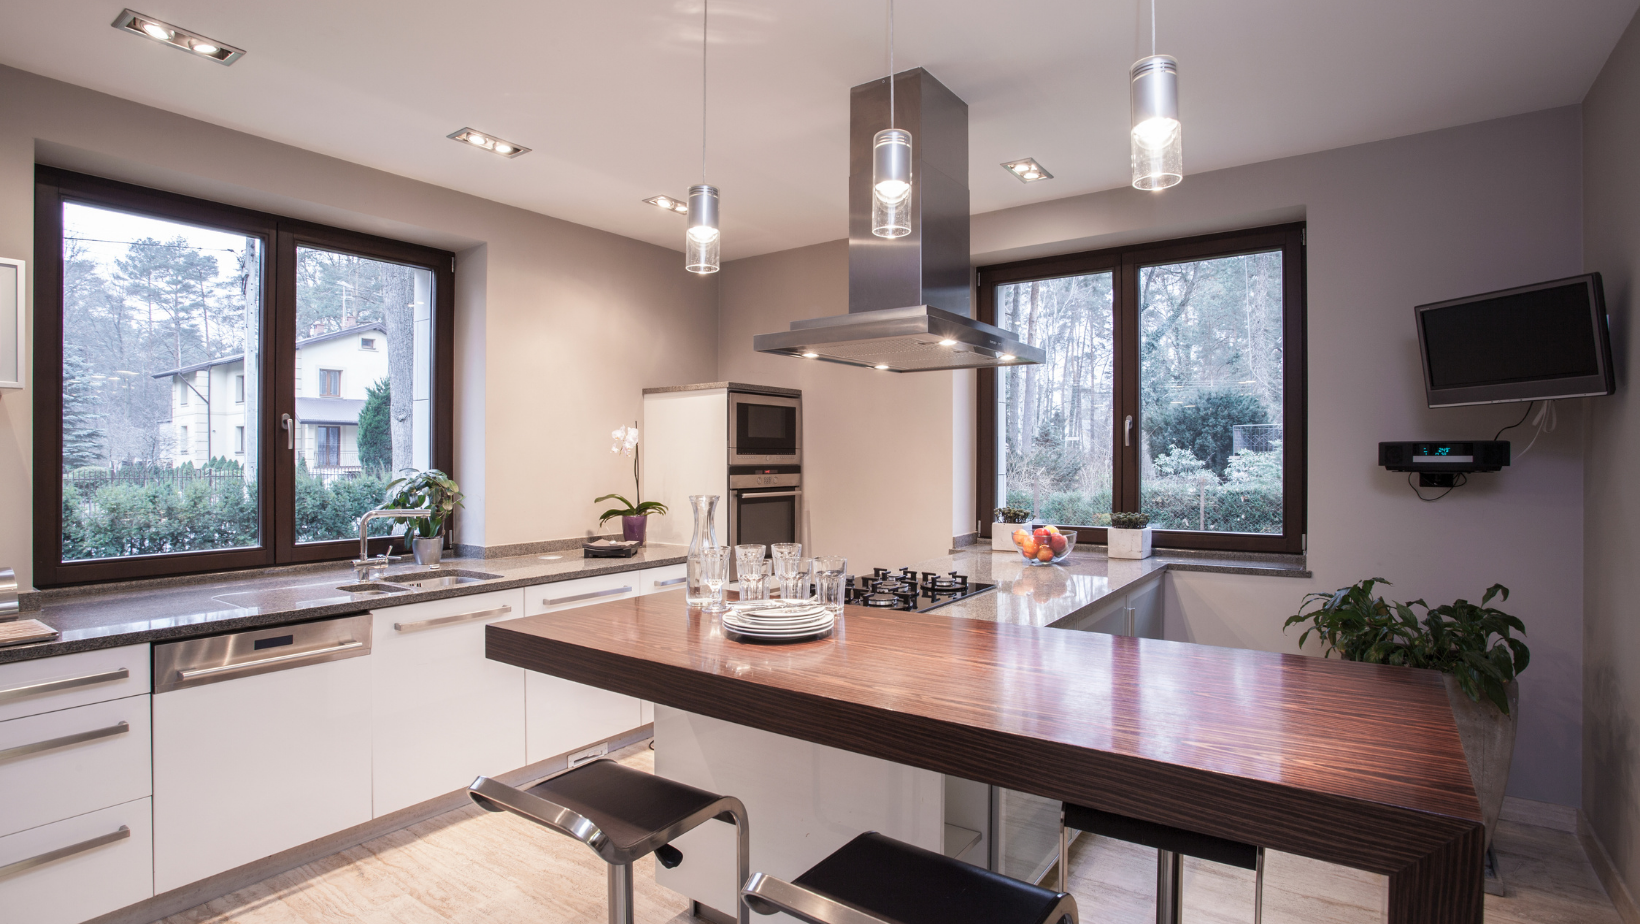 Our Top 5 Tips for Awesome Kitchen Lighting!